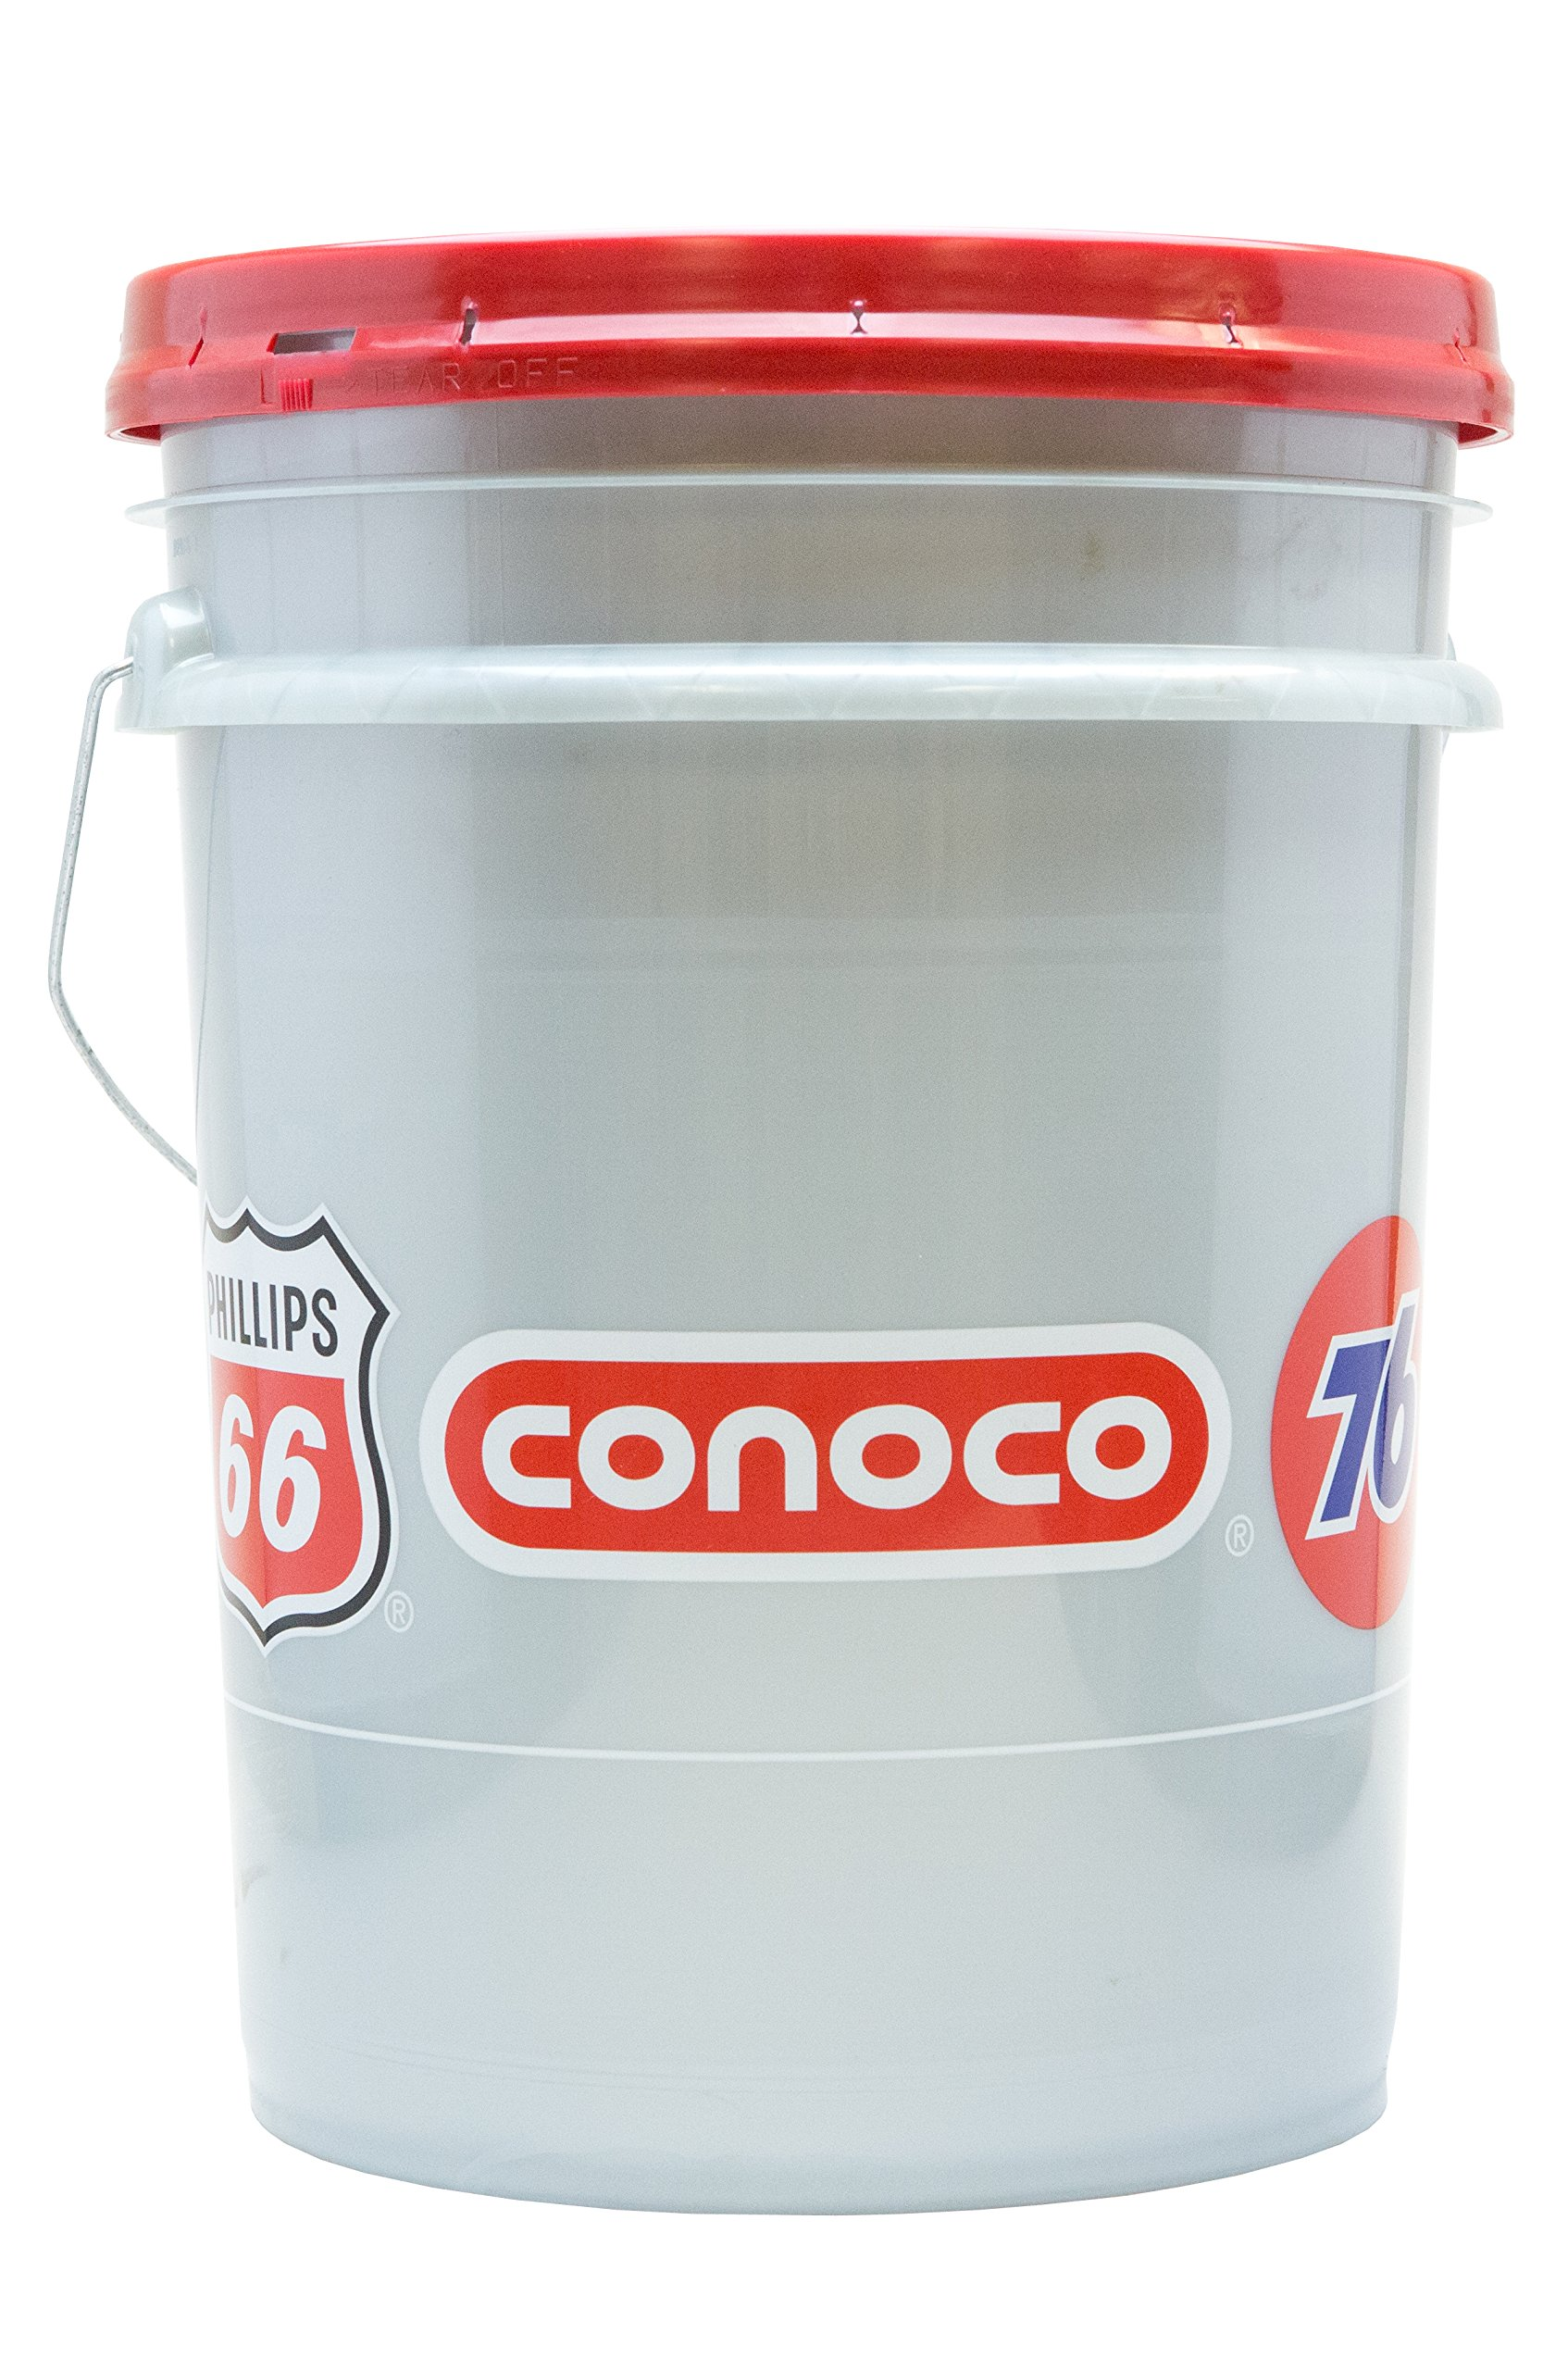 Conoco DYNALIFEHT2-35 Family Dynalife HT2 Grease, 5 gallon